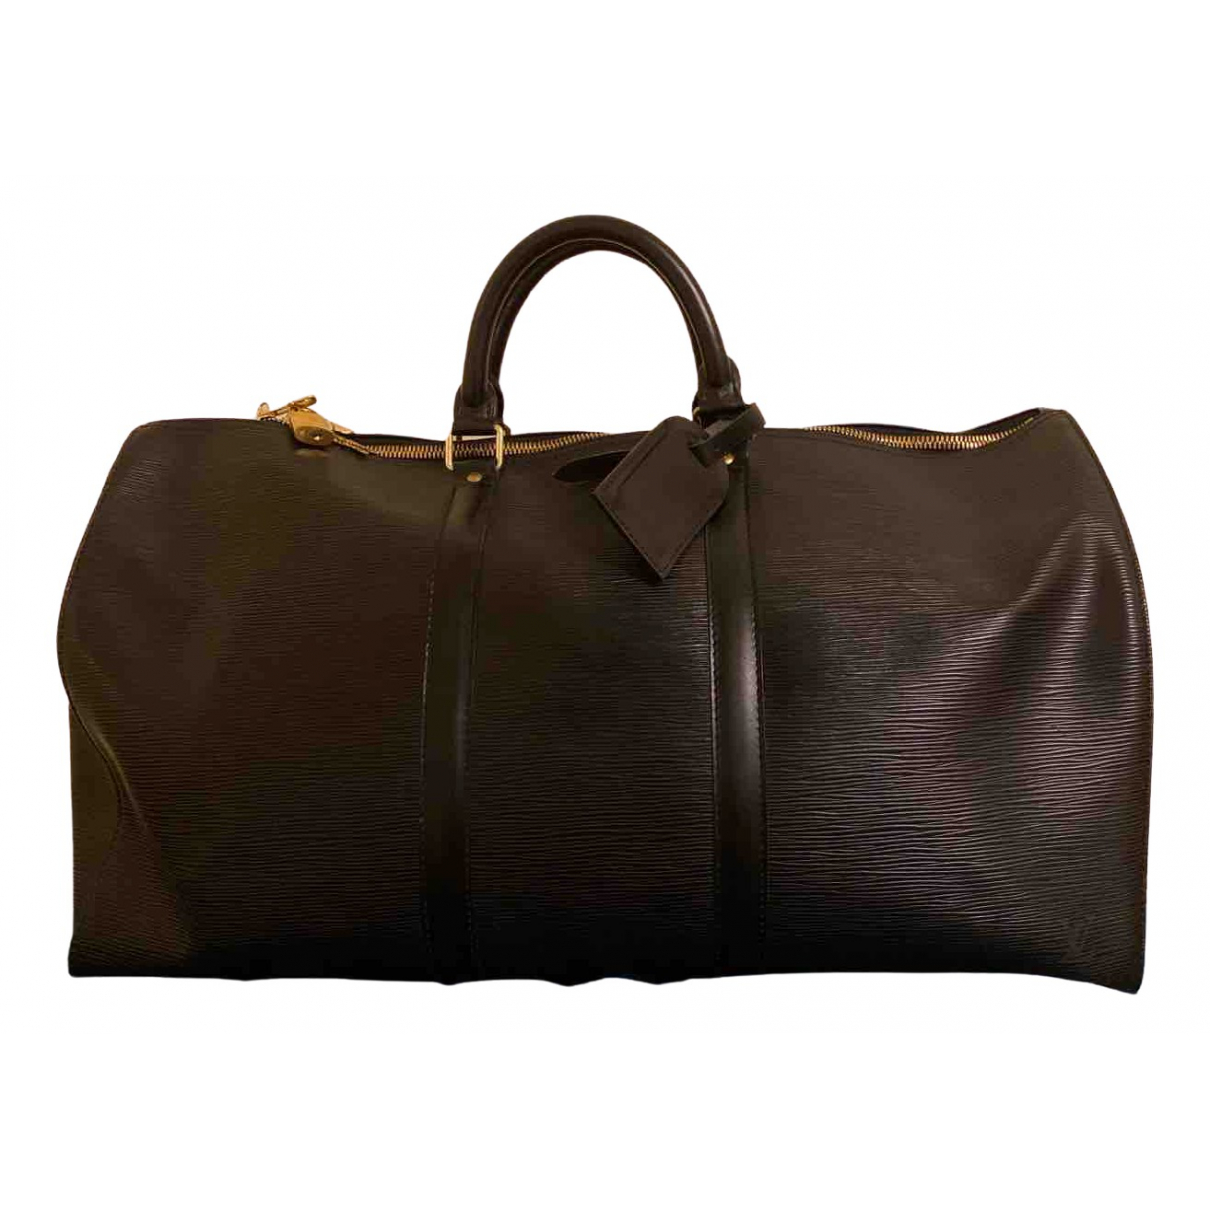 Louis Vuitton Keepall Black Leather Travel bag for Women \N